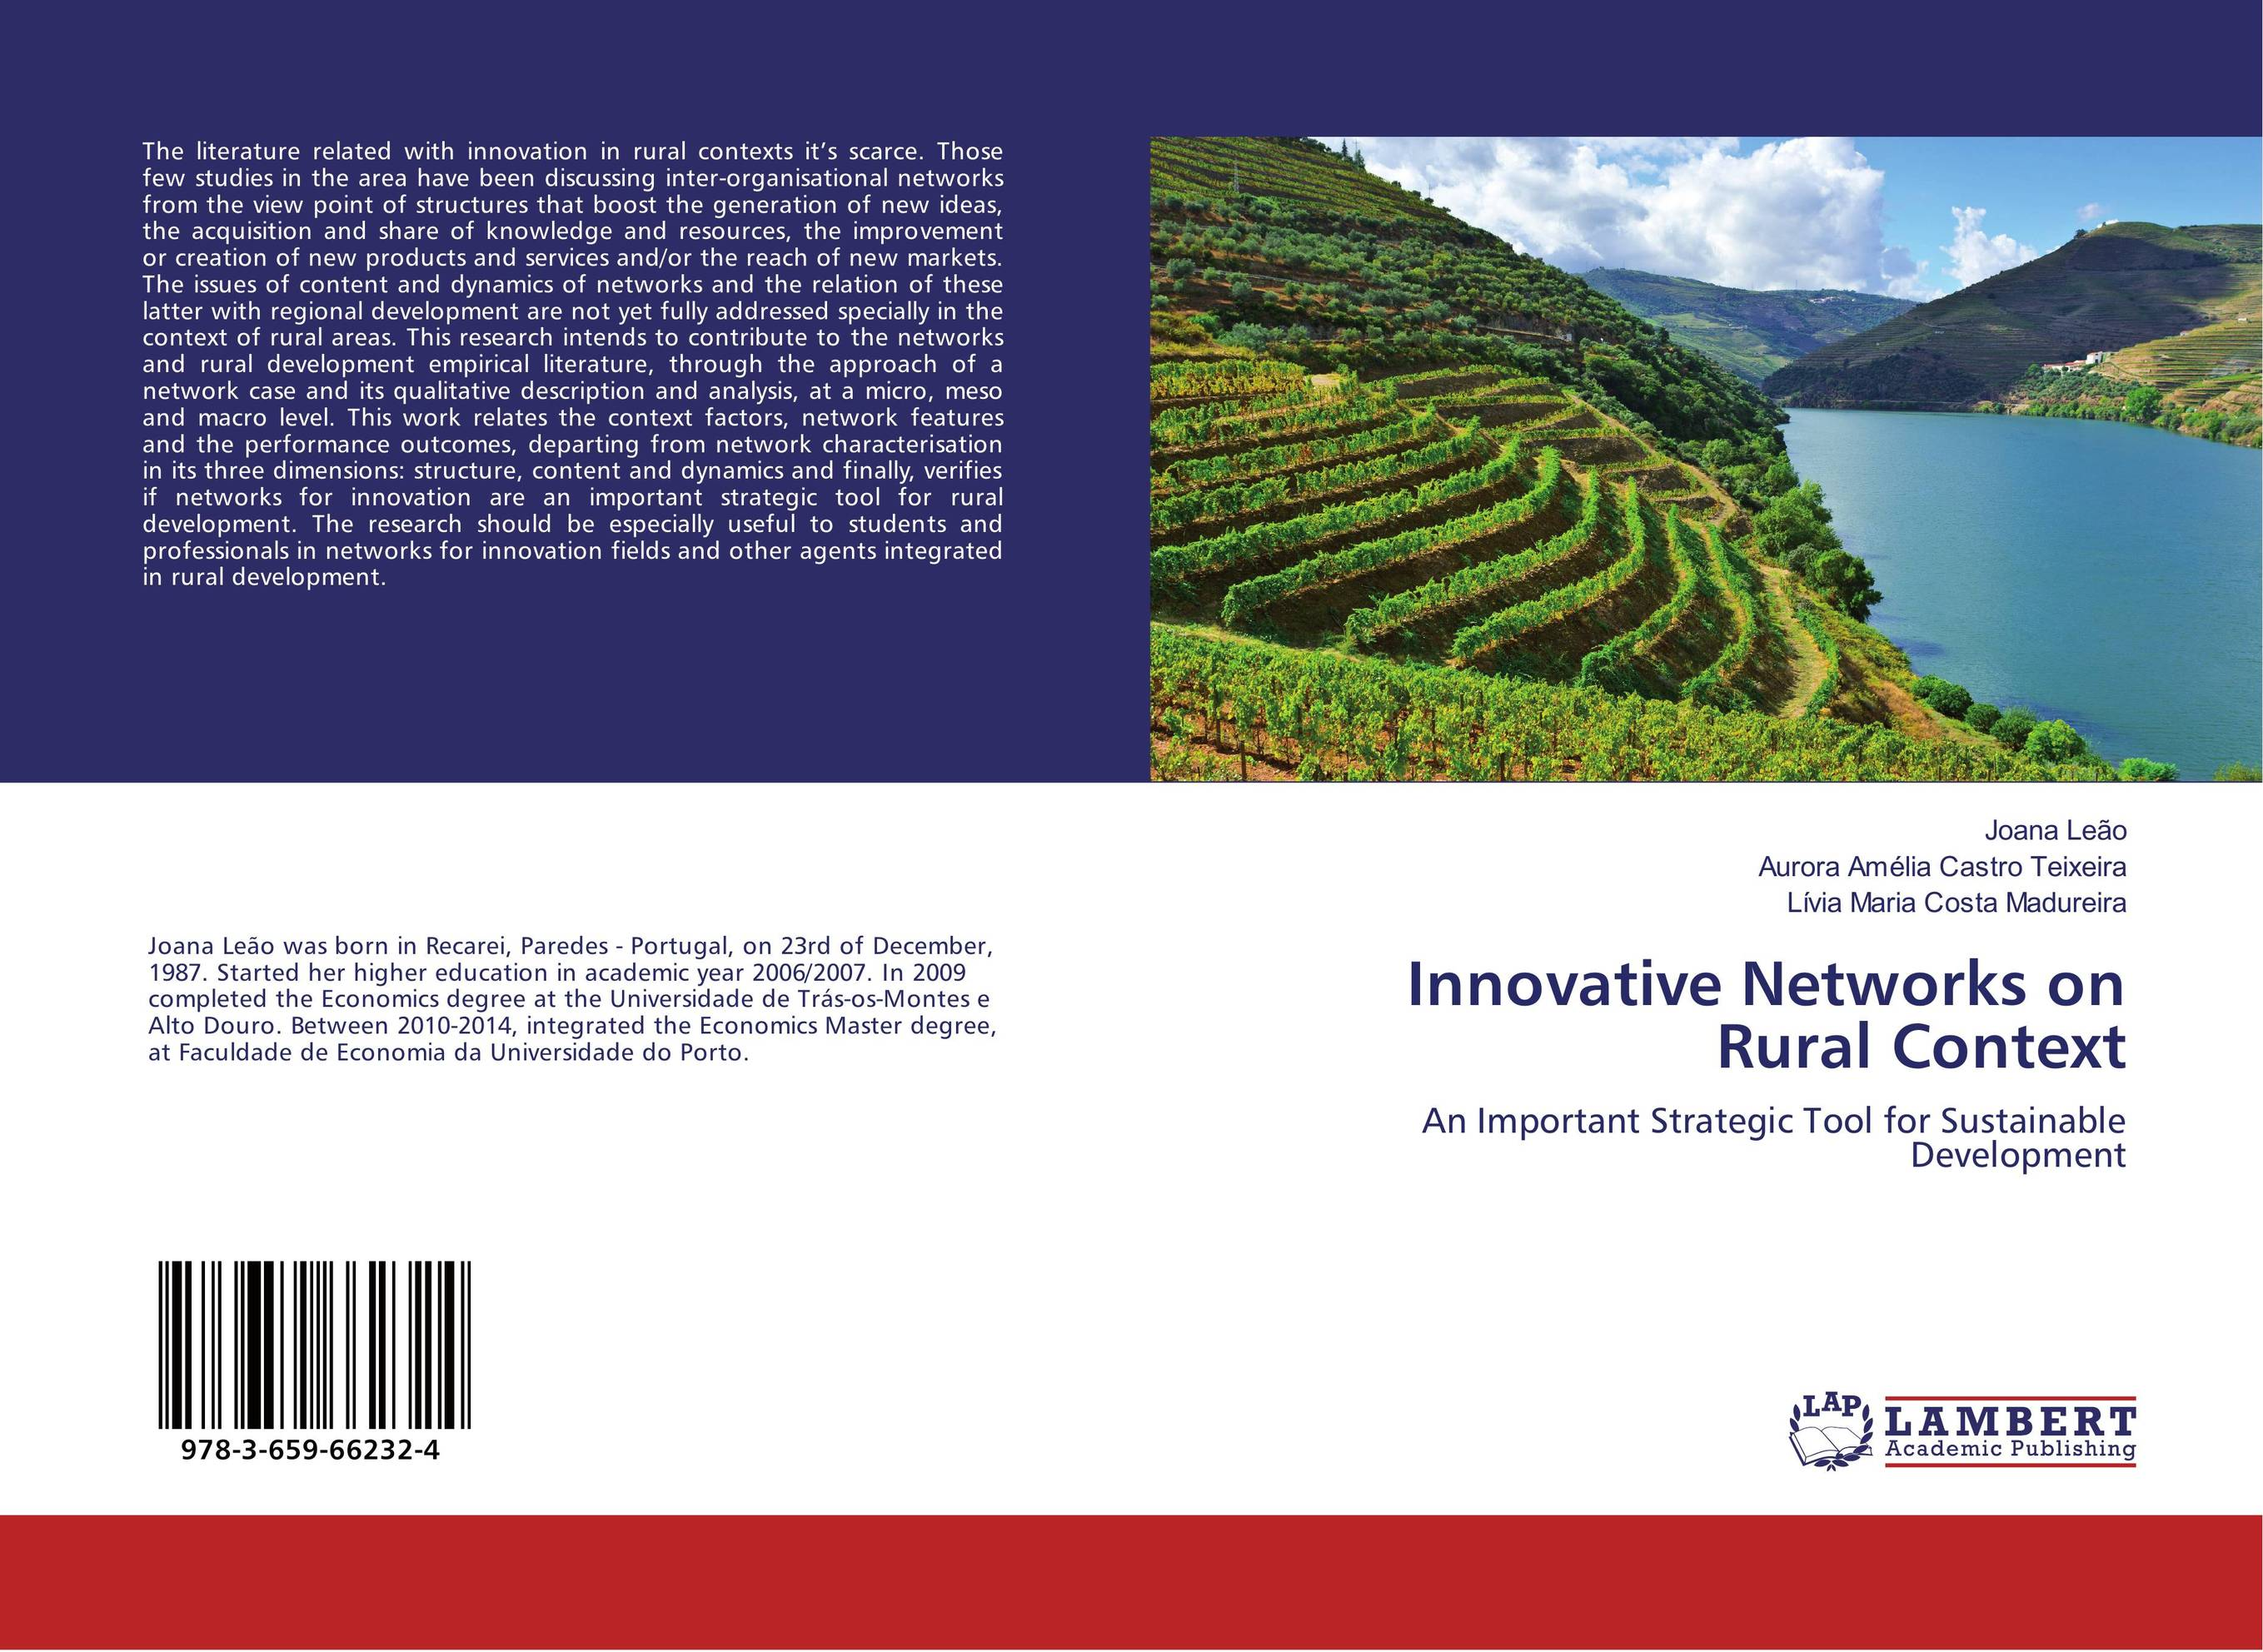 Innovative Networks on Rural Context duncan bruce the dream cafe lessons in the art of radical innovation